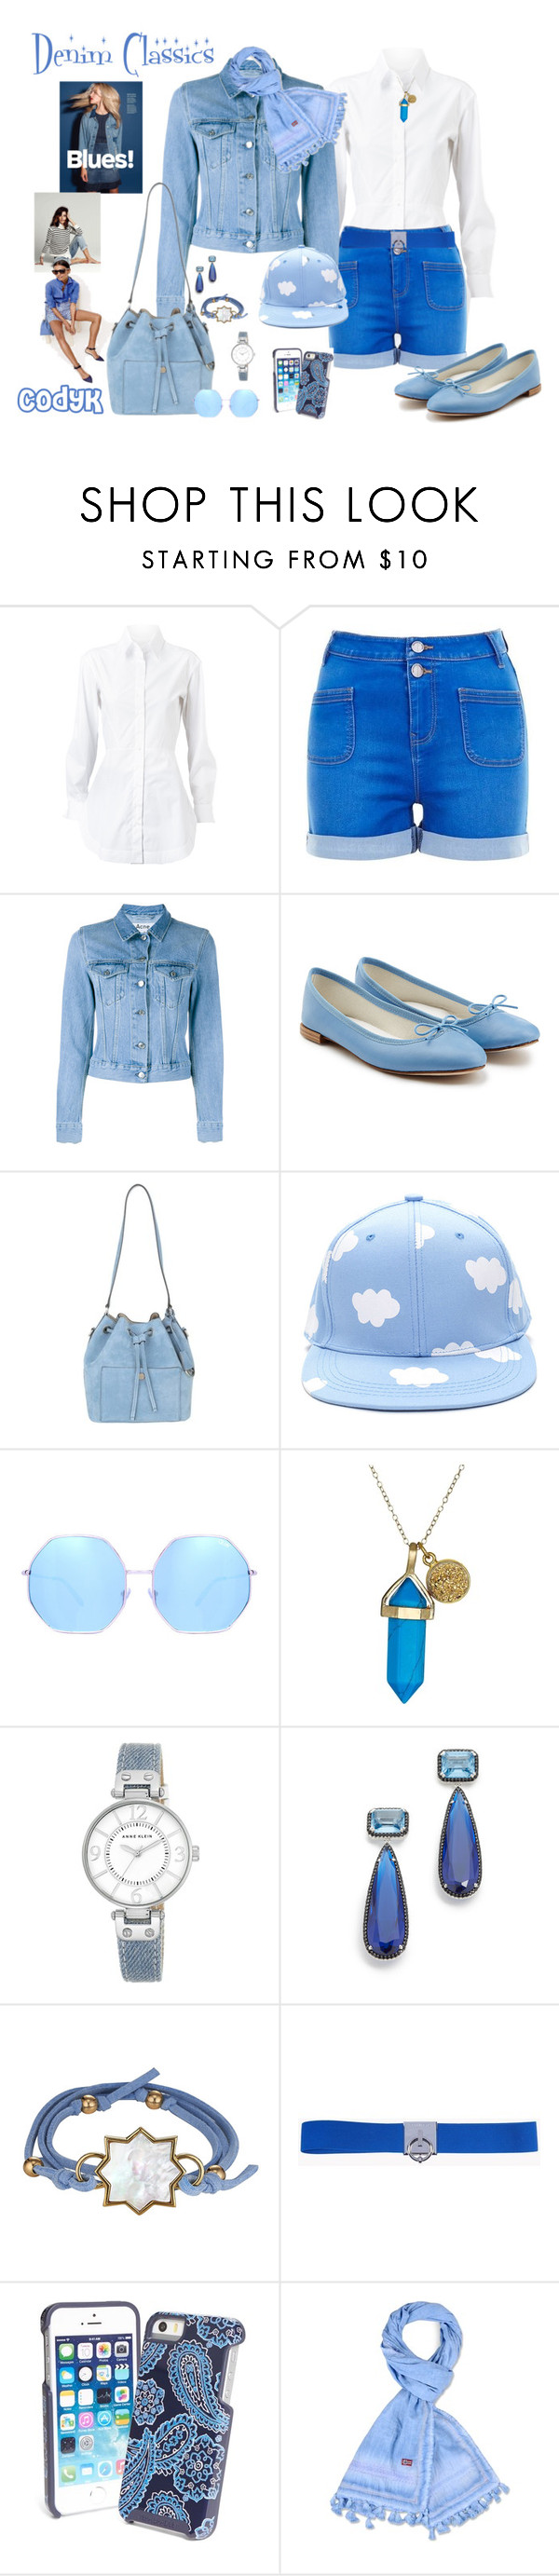 """Denim Classics"" by cody-k ❤ liked on Polyvore featuring Alaïa, Acne Studios, Repetto, J.Crew, Michael Kors, Quay, Dee Berkley, Anne Klein, Jarin K and Asha by ADM"